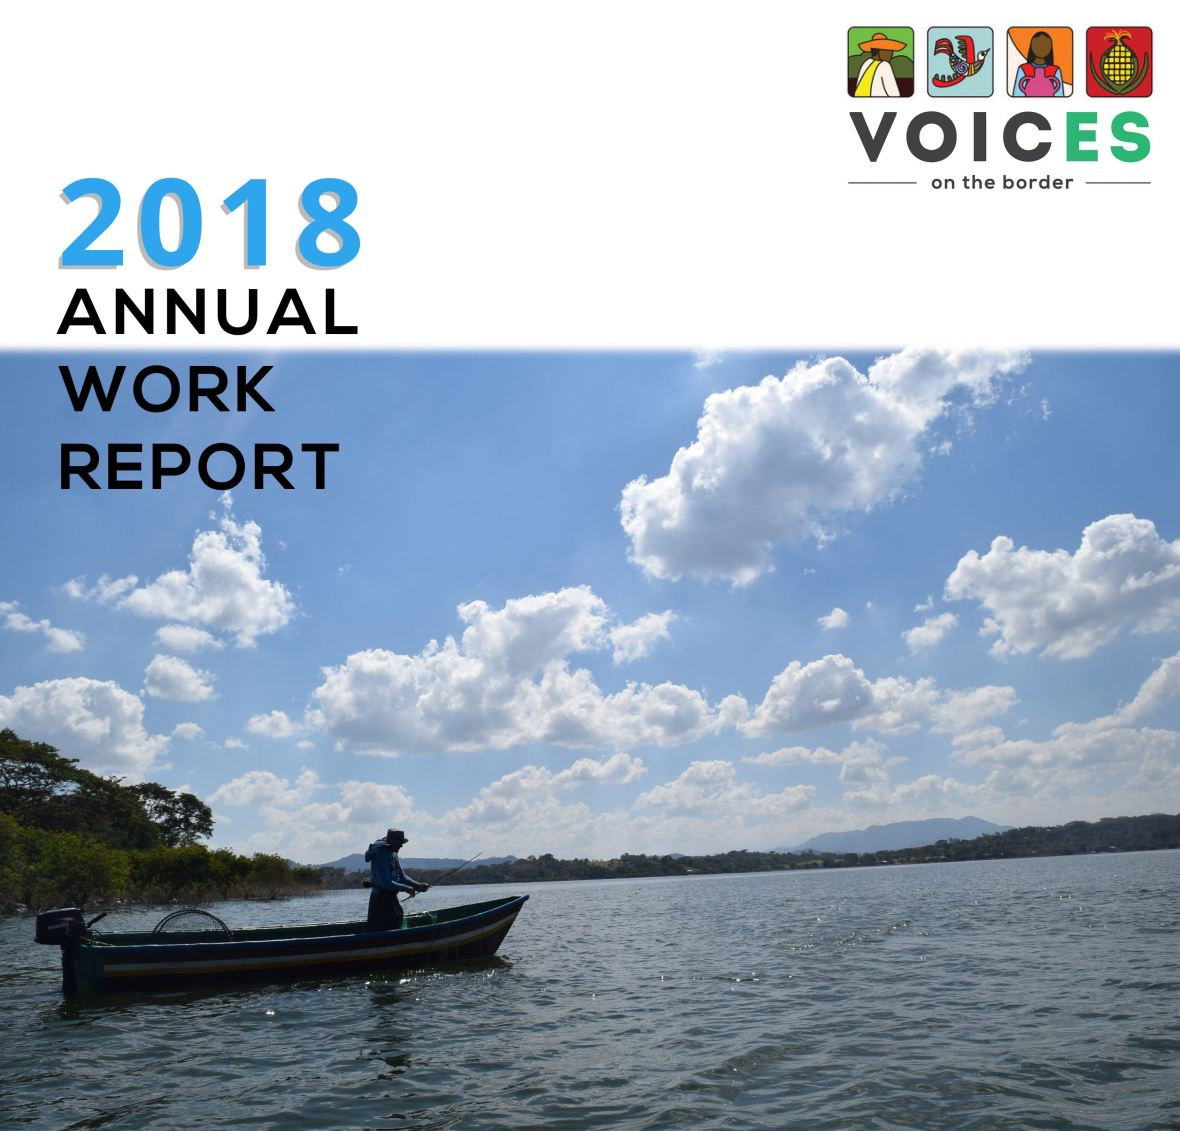 2018 annual work report